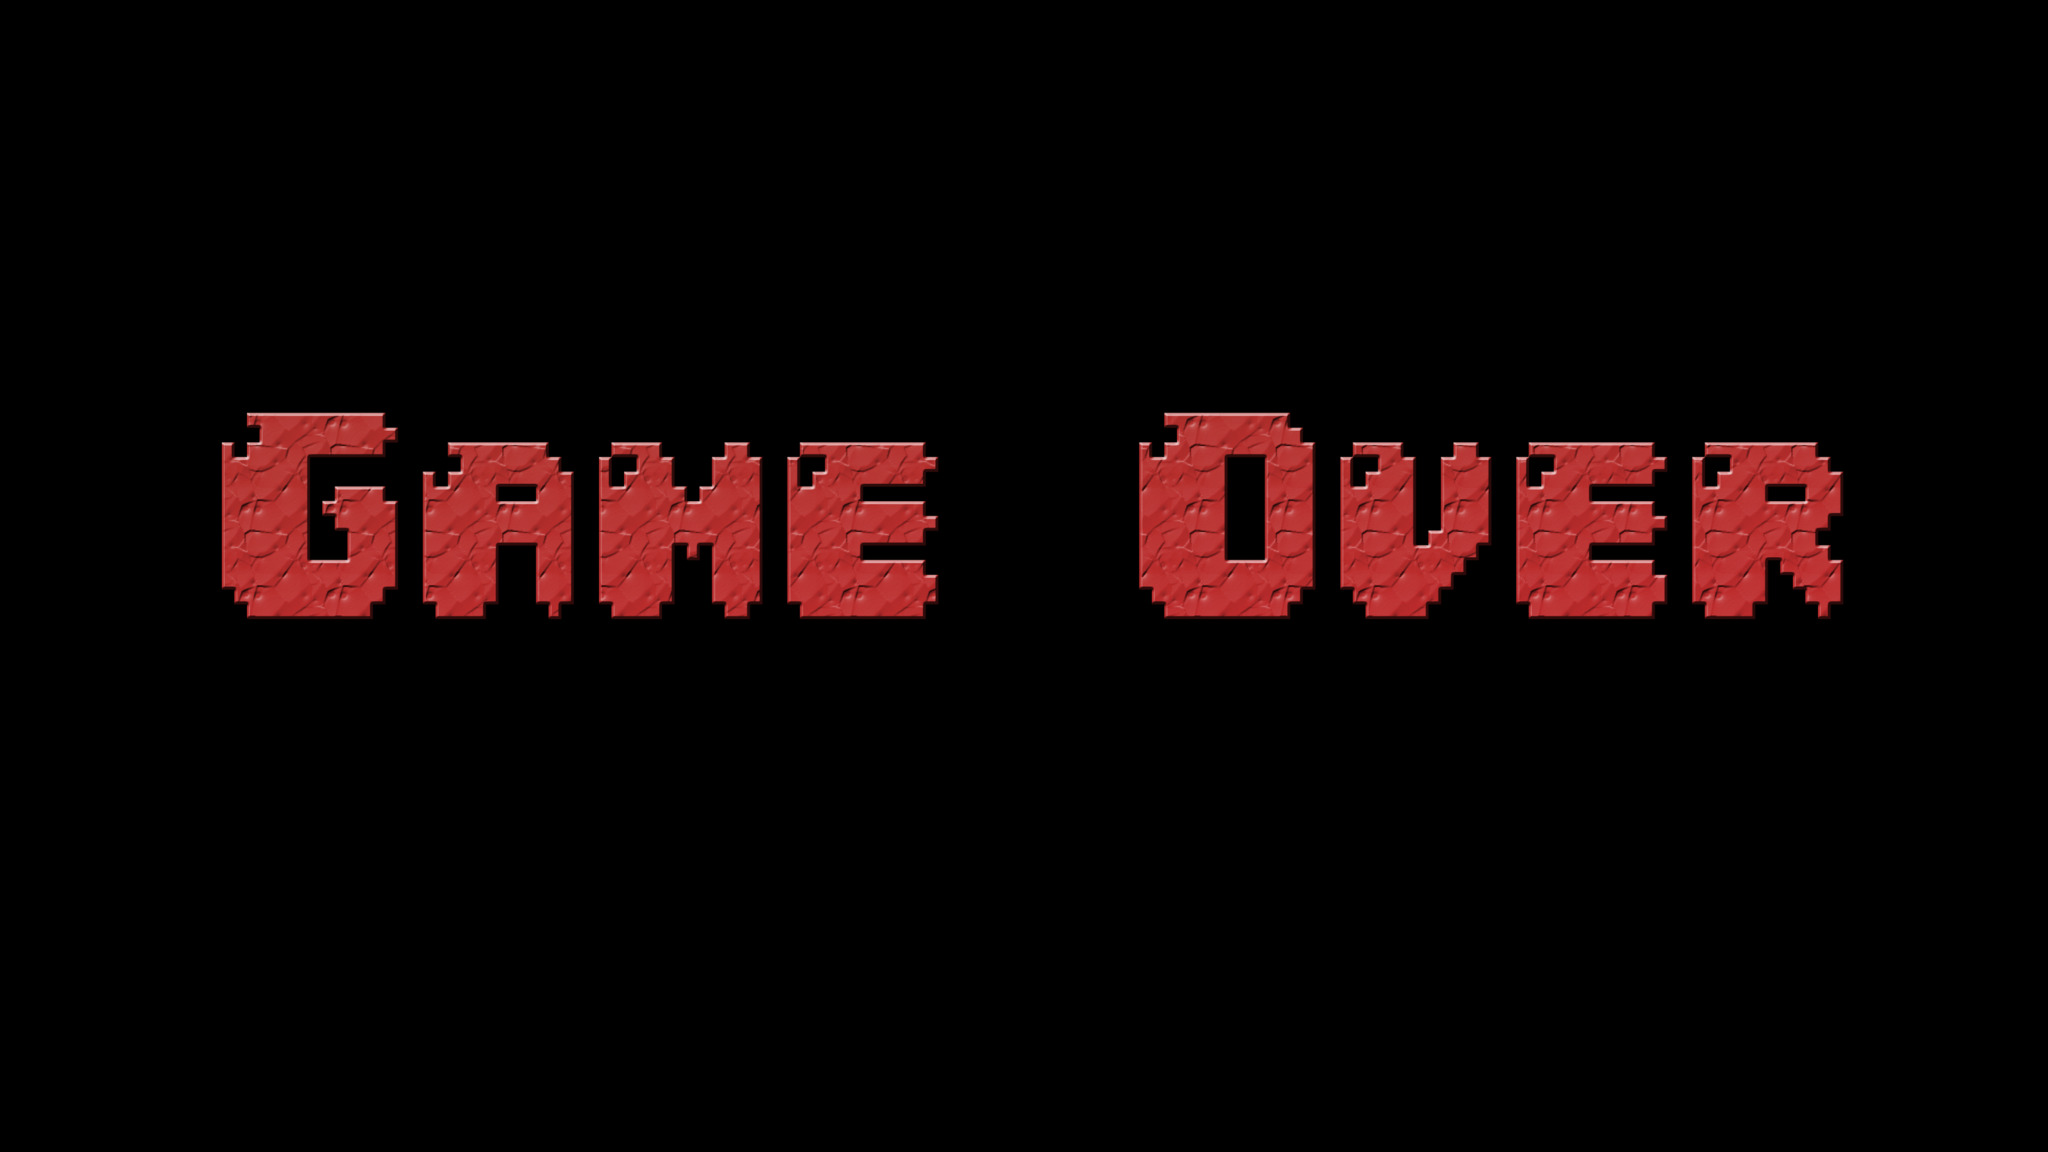 2048x1152 Game Over Typography 2048x1152 Resolution HD 4k ...